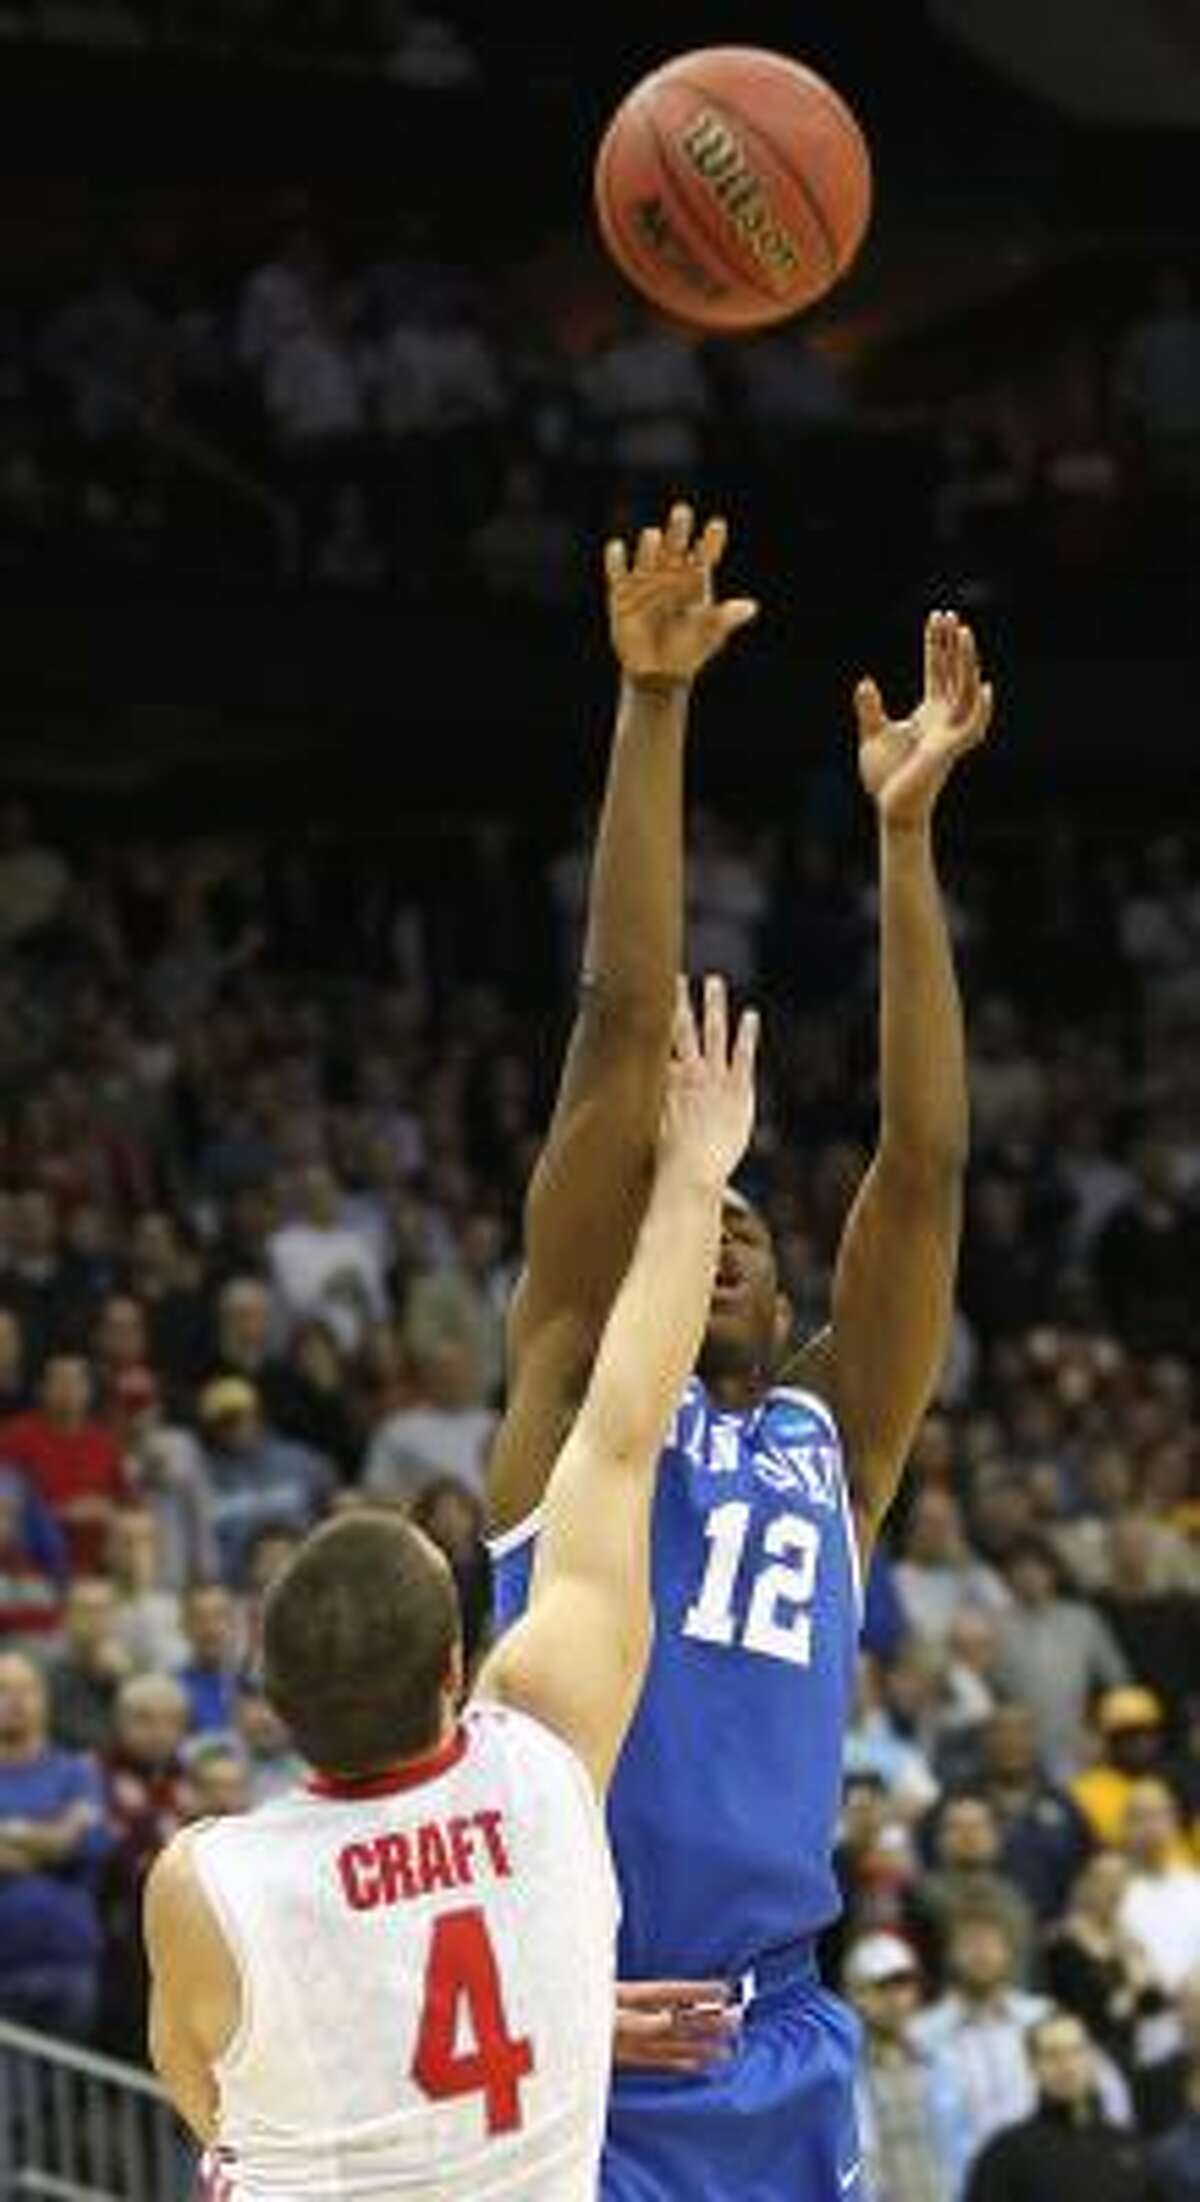 Kentucky guard Brandon Knight (12) scores the game-winning basket over Ohio State guard Aaron Craft in the closing seconds of Friday's game.